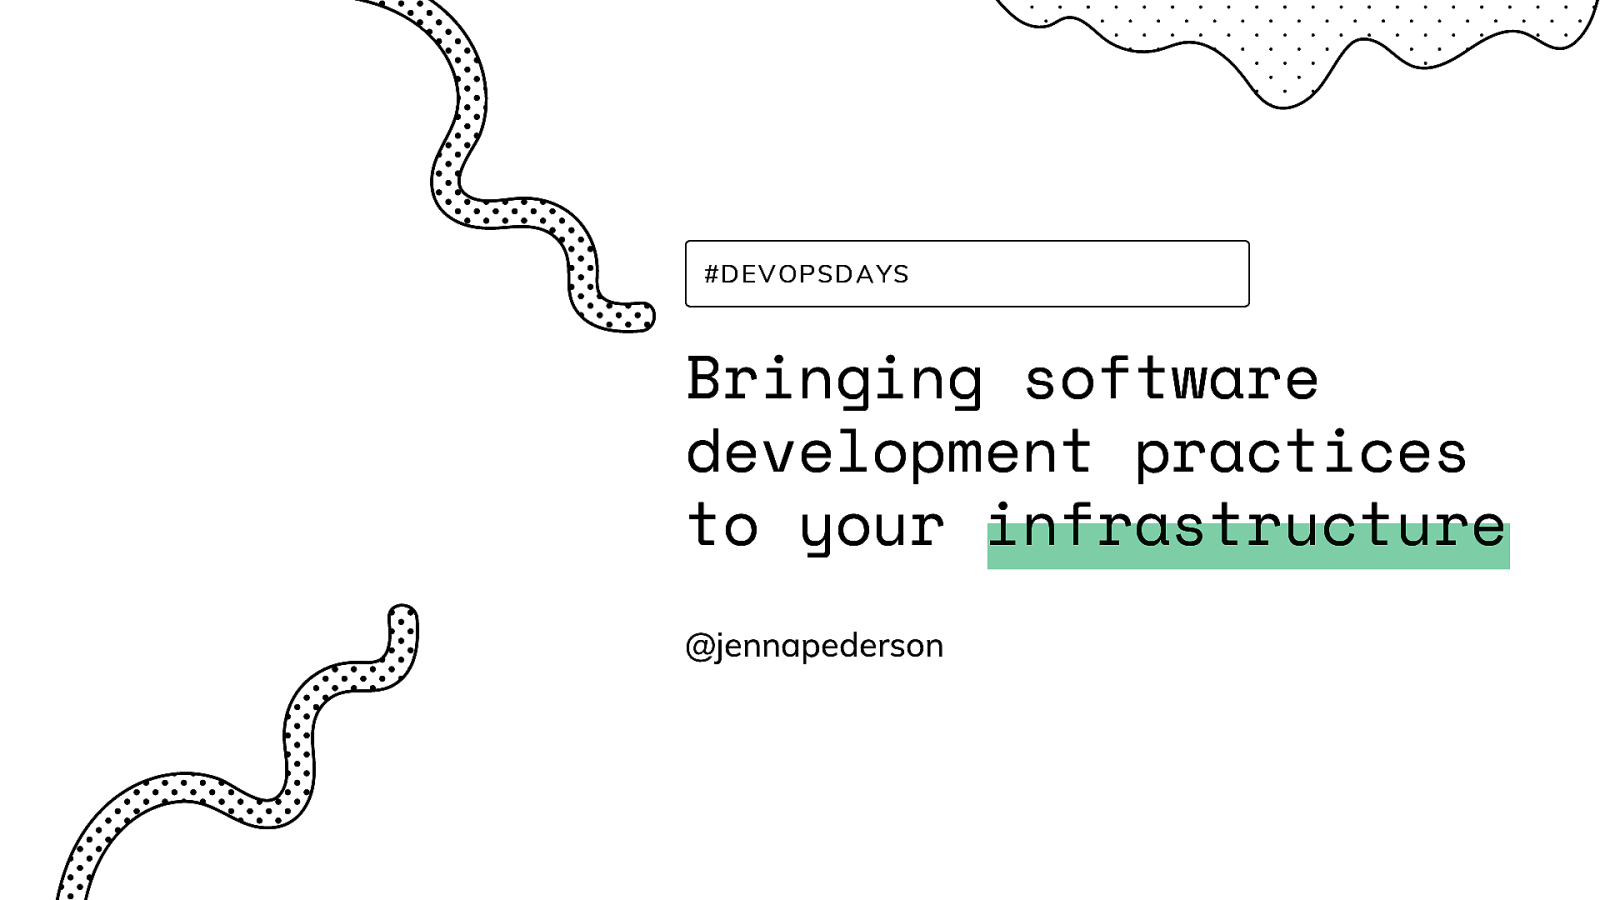 Bringing software development practices to your infrastructure